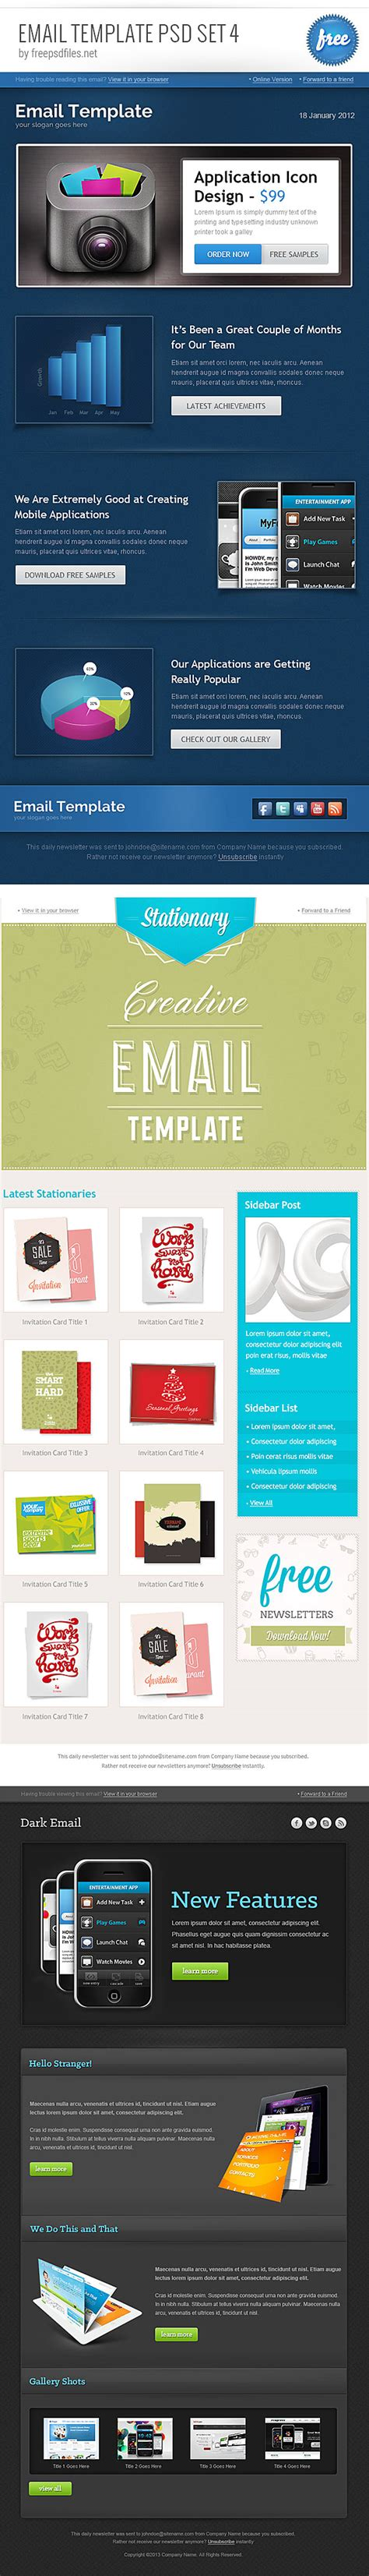 Email Template Psd Set 4 Free Psd Files Email Template Psd